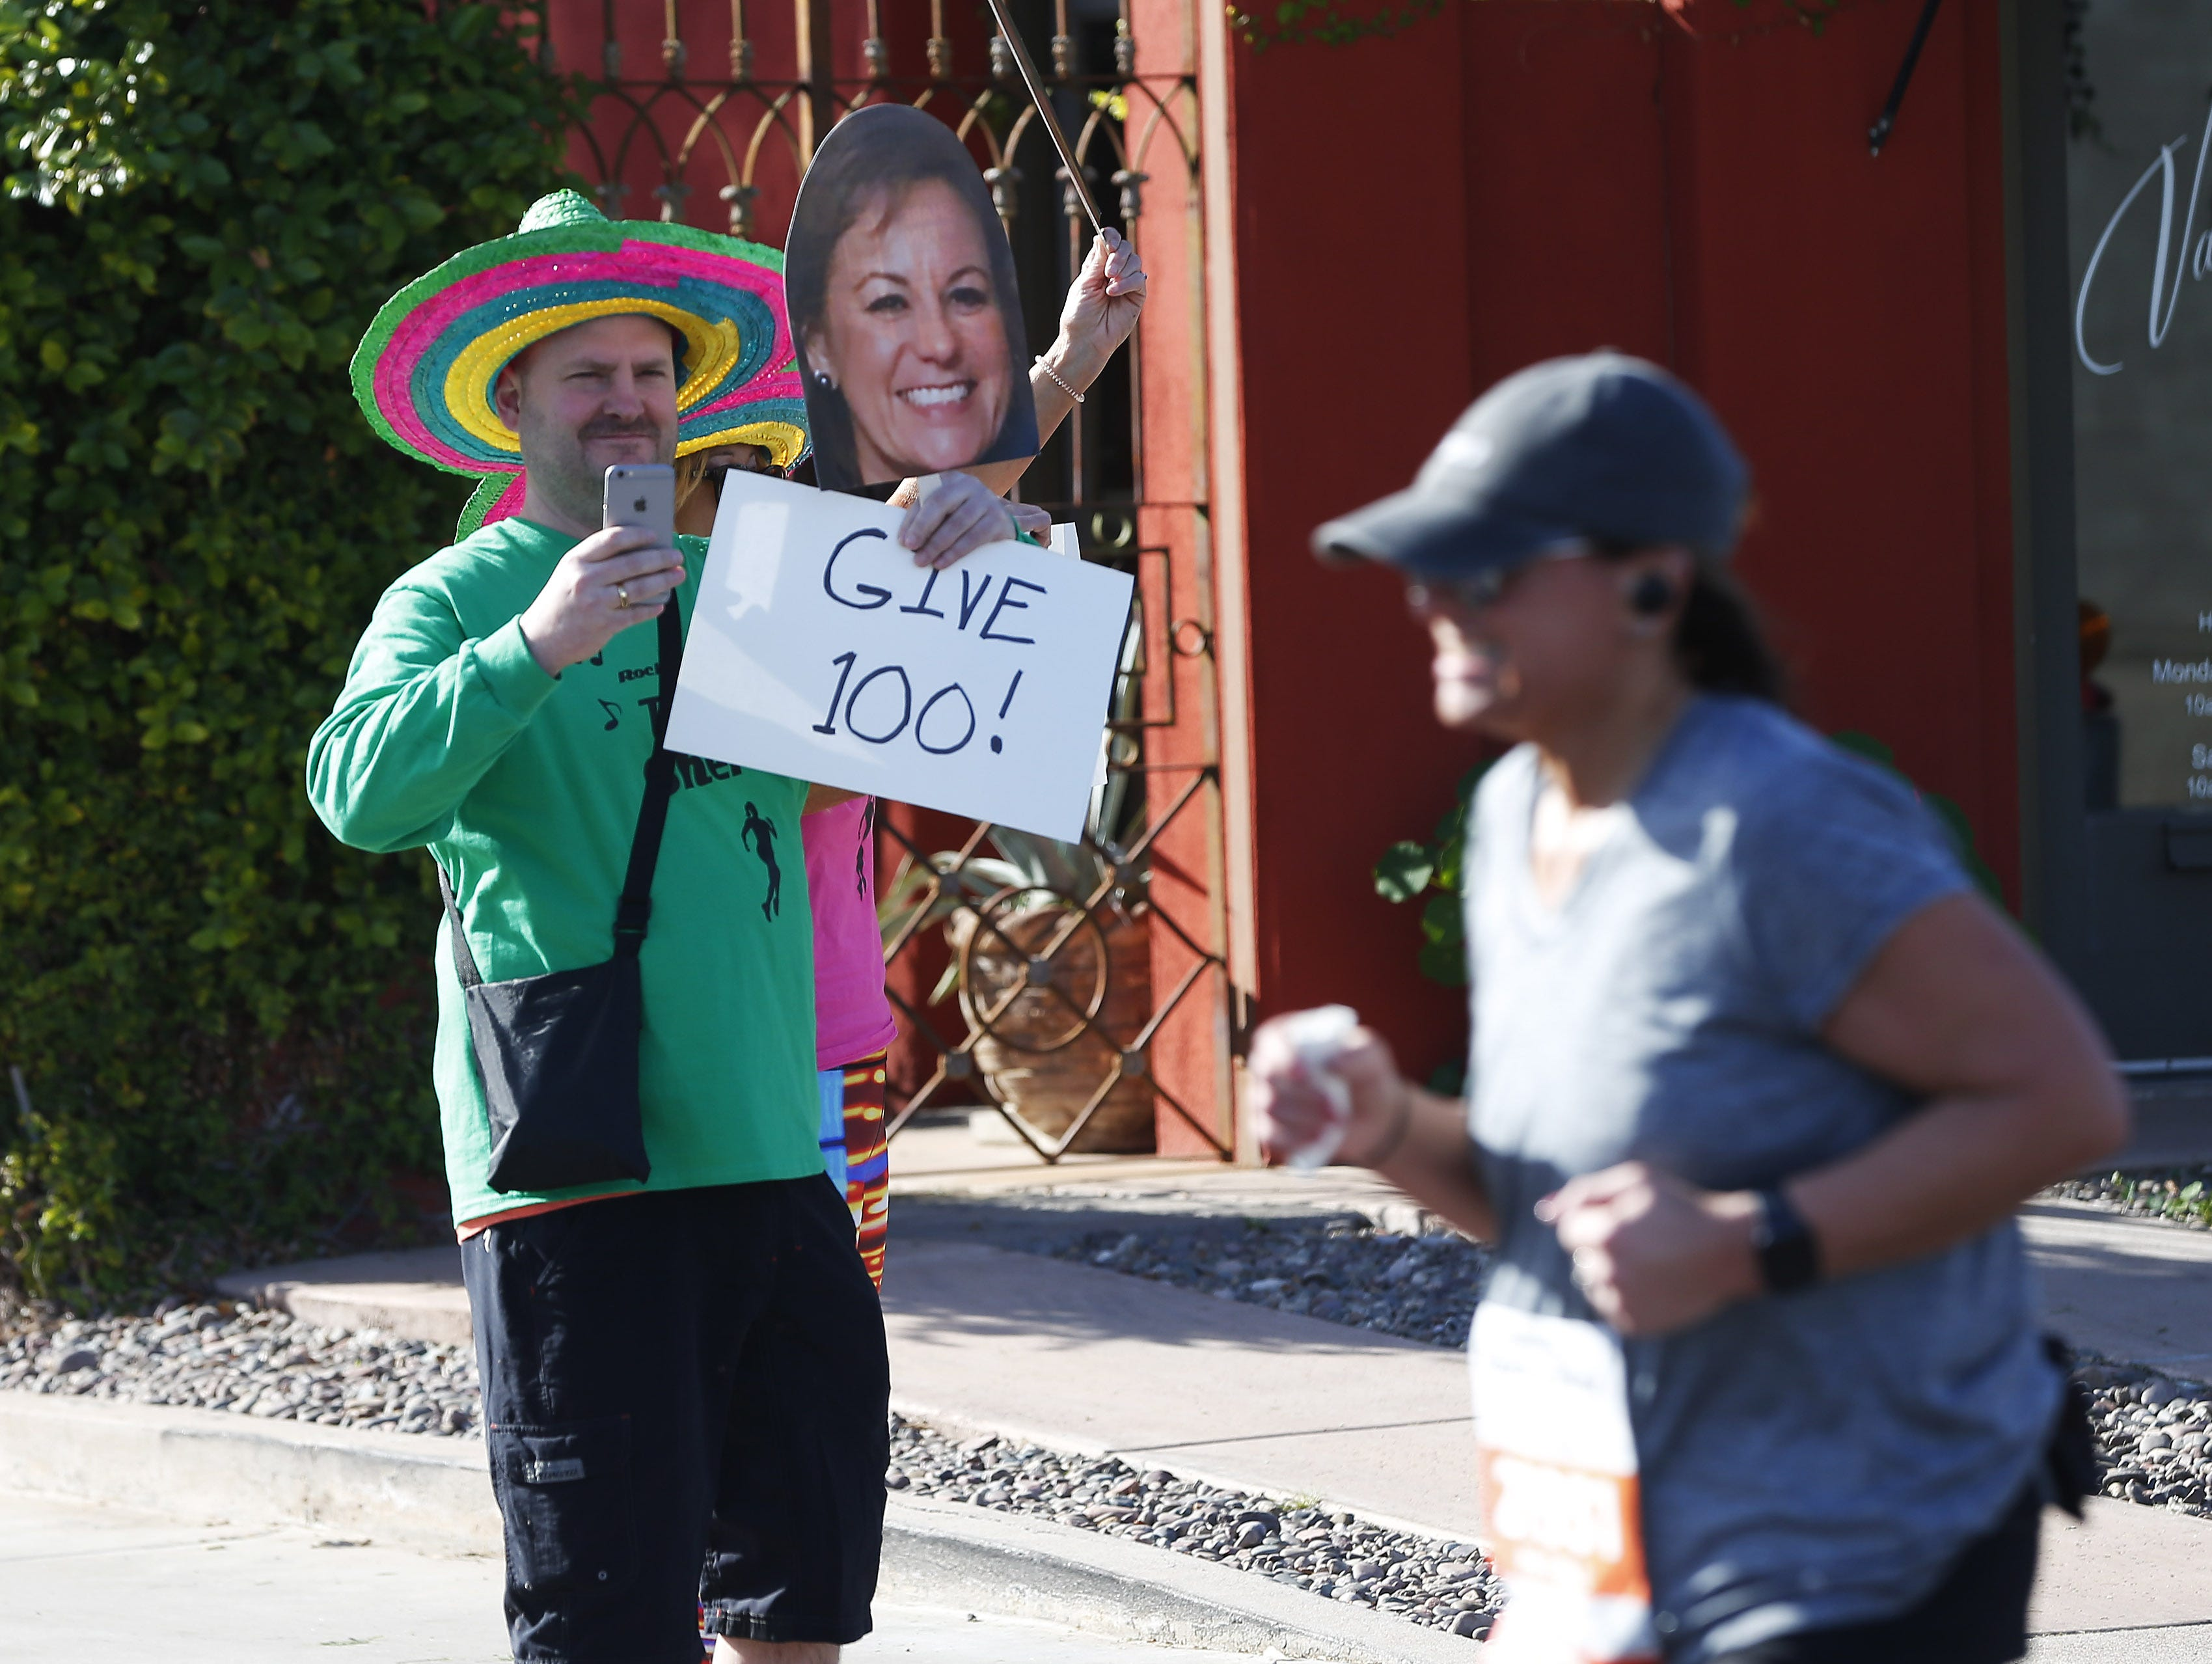 Bryce Nelson supports his wife, Shere Lenz, running on 1st Ave. during the Rock 'N' Roll Marathon in Scottsdale on Jan. 20, 2019.